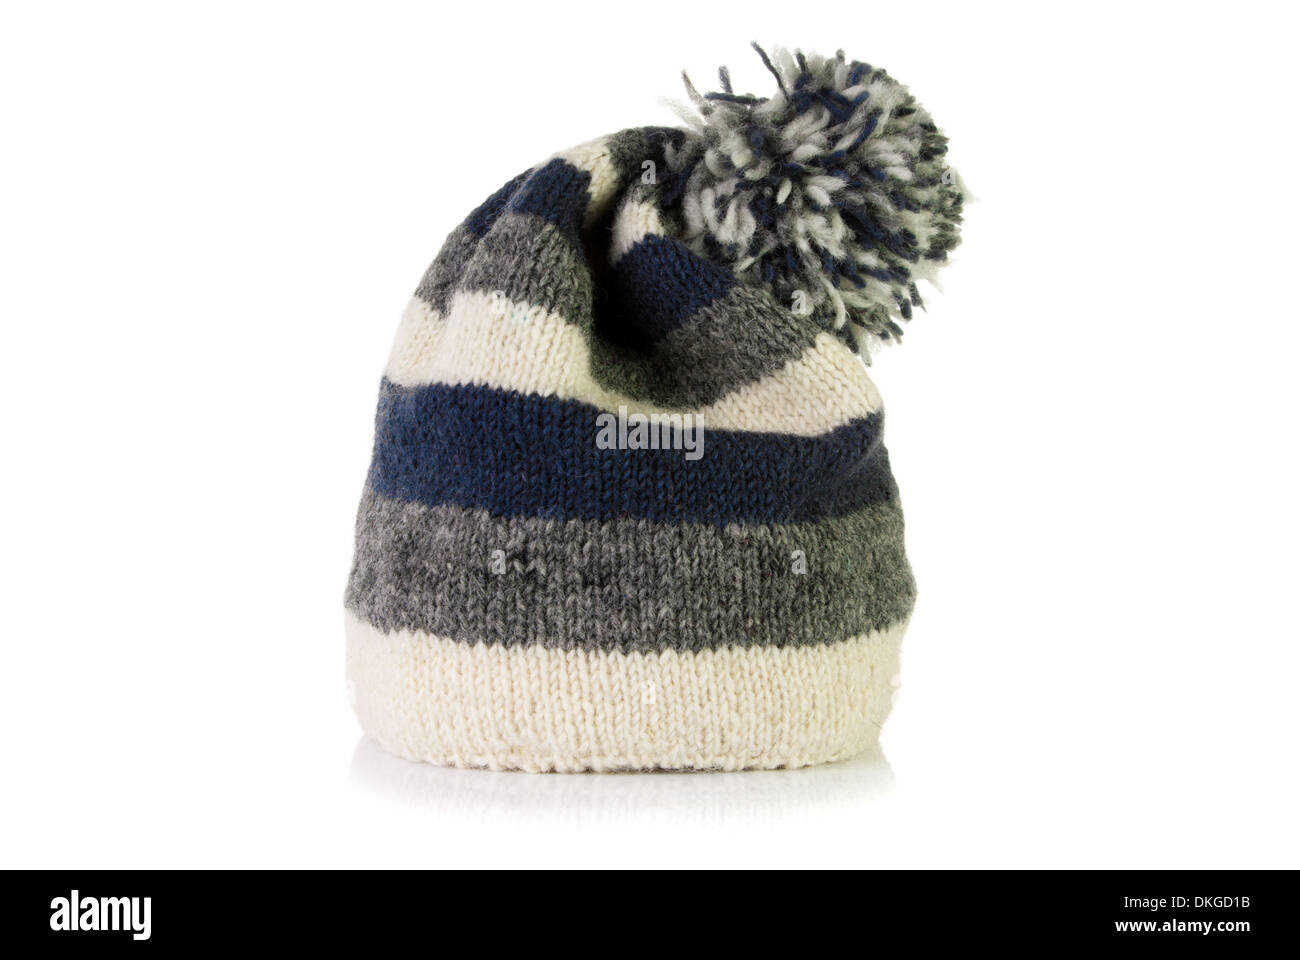 05b38c890080b Bobble Hat Stock Photos   Bobble Hat Stock Images - Alamy